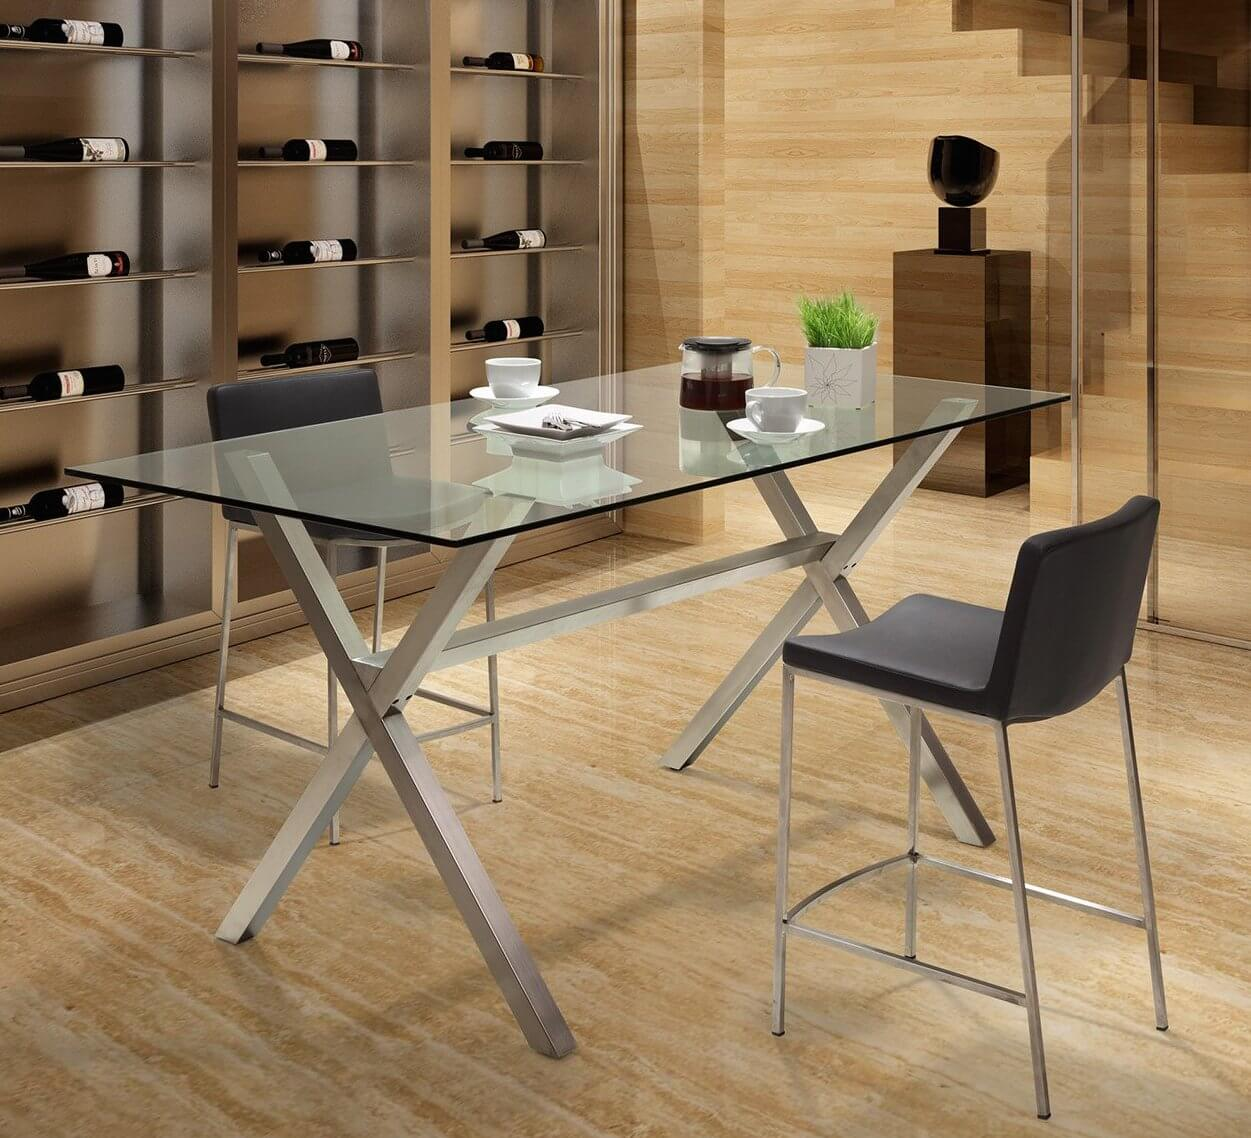 Elegant Tableware For Dining Rooms With Style: 38 Types Of Dining Room Tables (Extensive Buying Guide